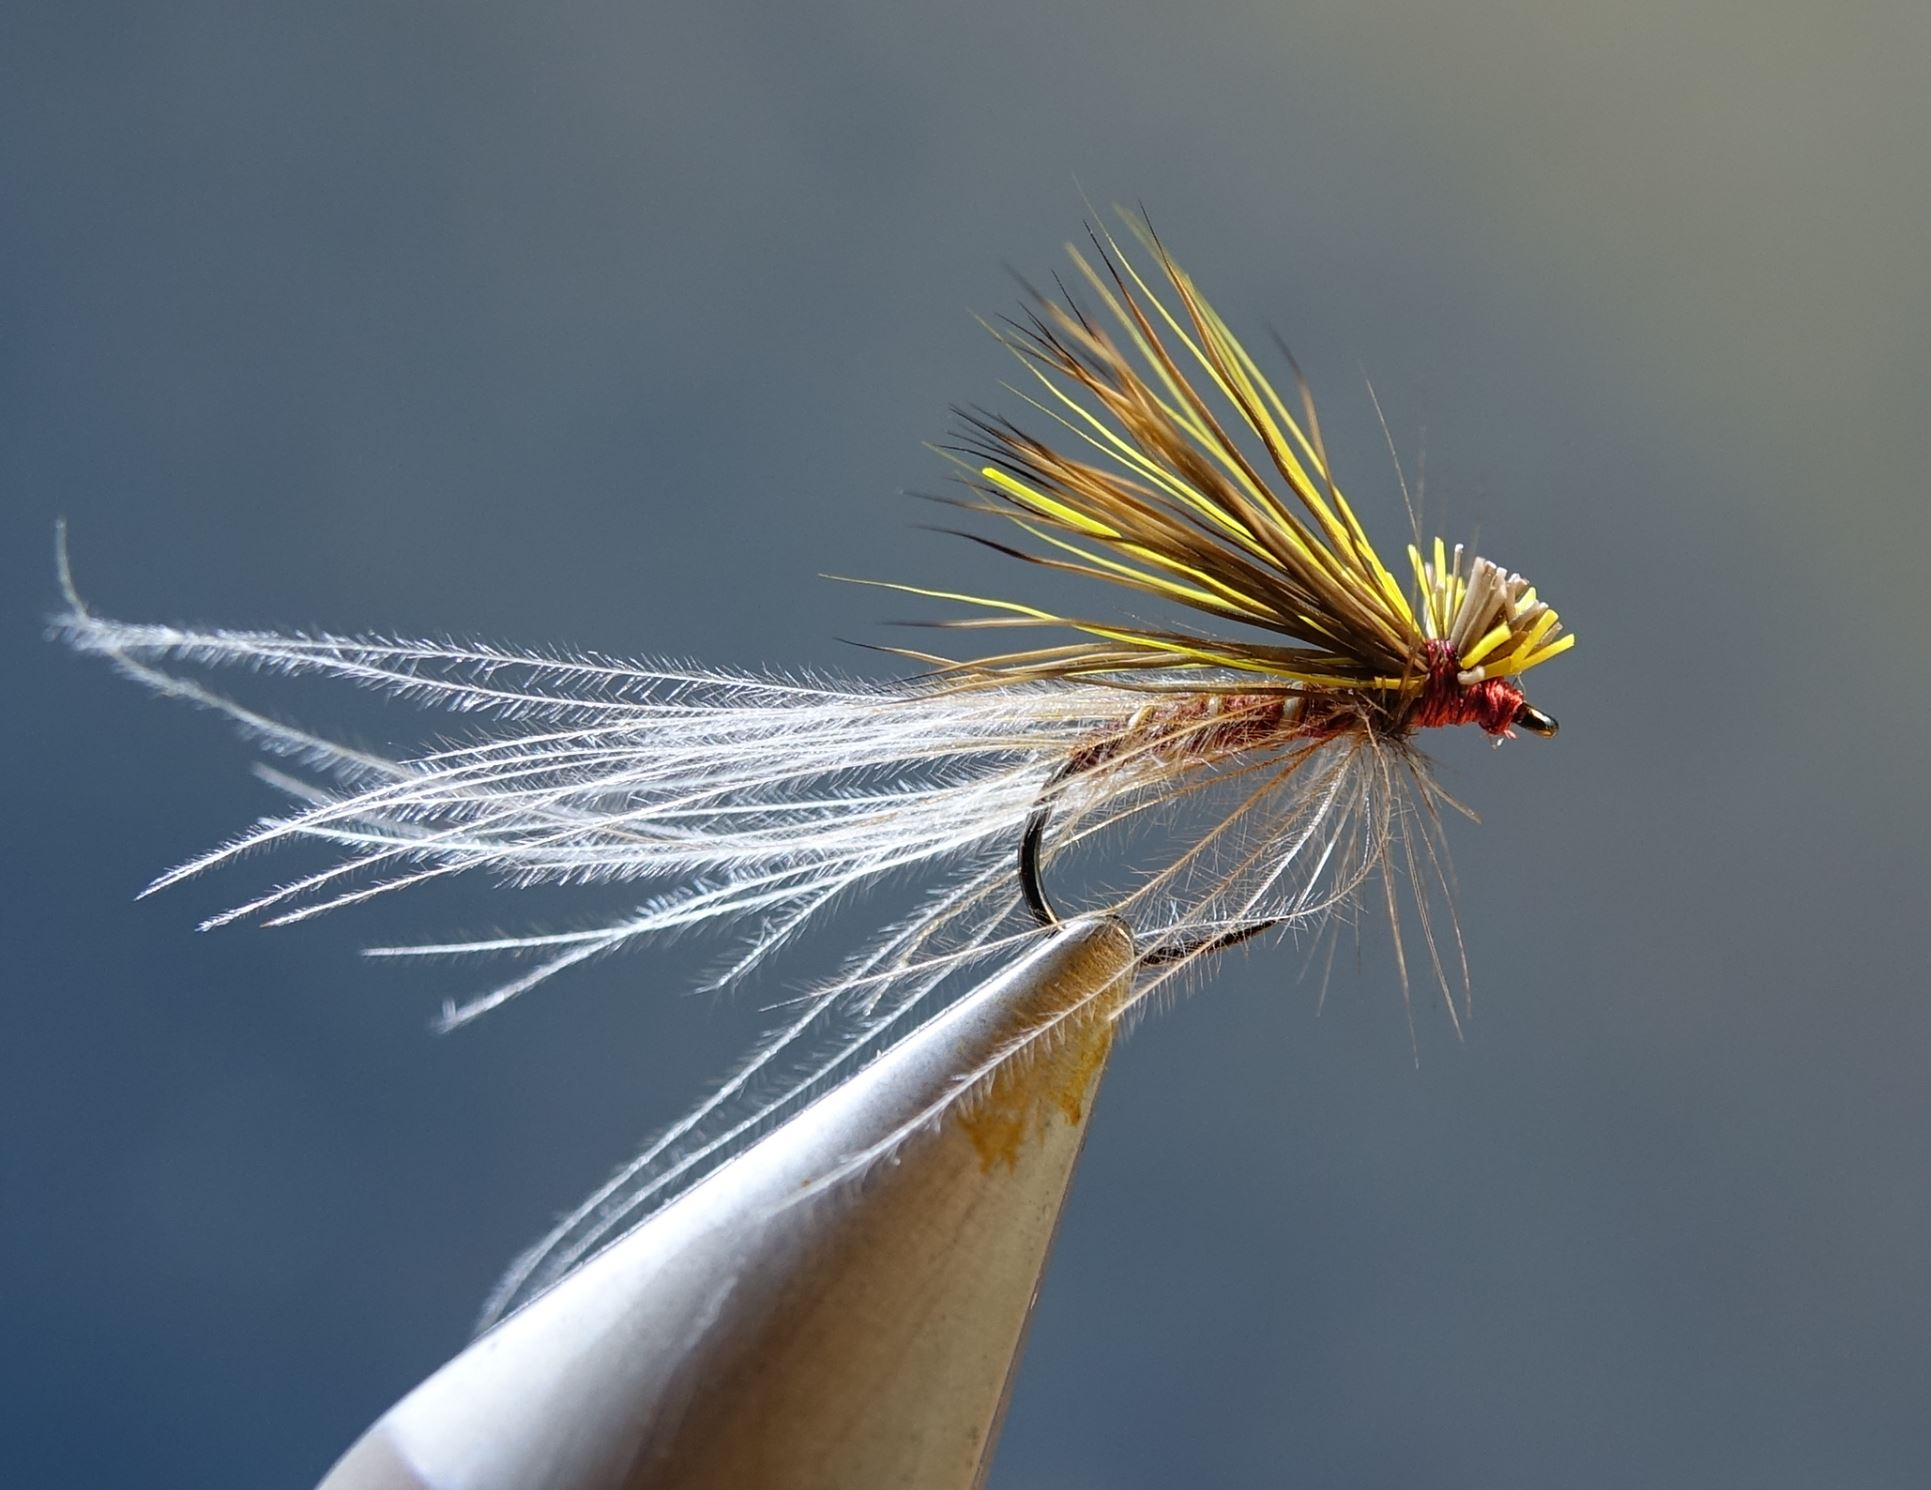 sulfure émergente poil cdc mouche fly tying eclosion